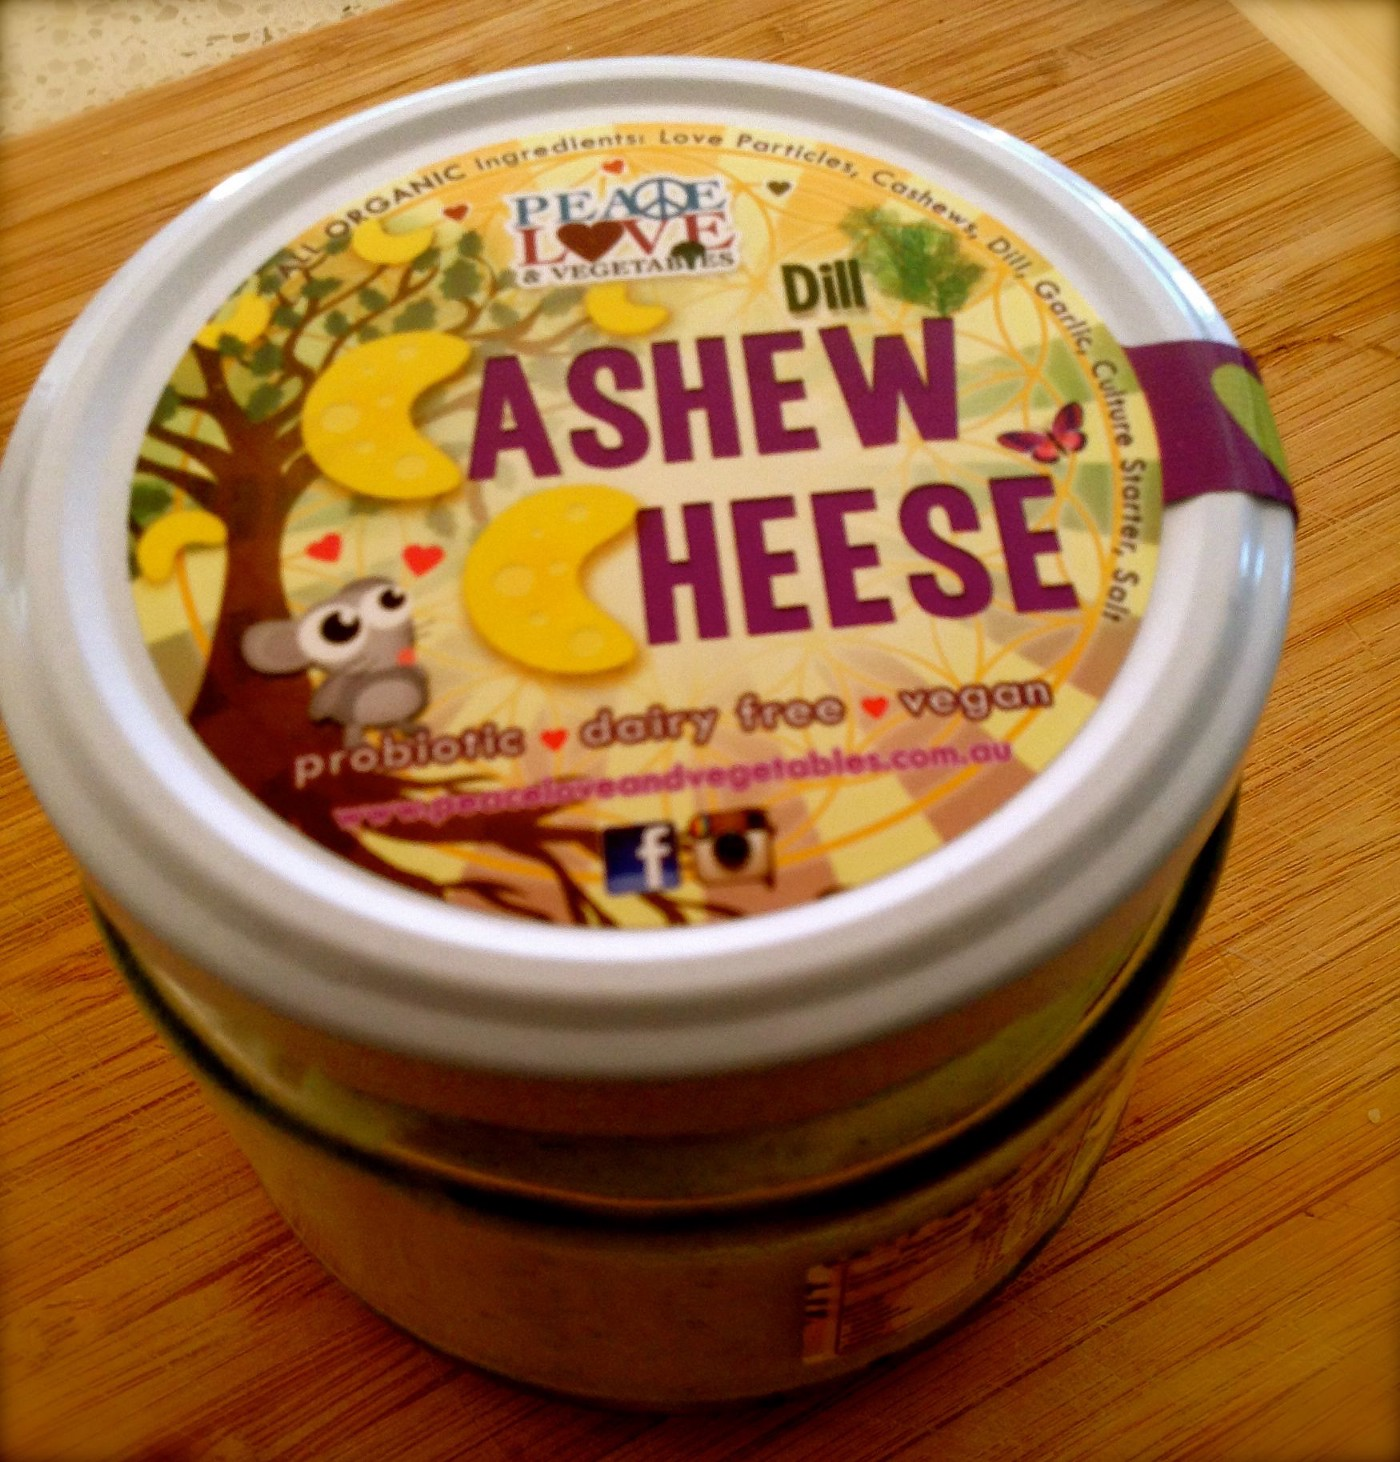 Peace Love & Vegetables 'Dill Cashew Cheese' - Vegan cheese reviews